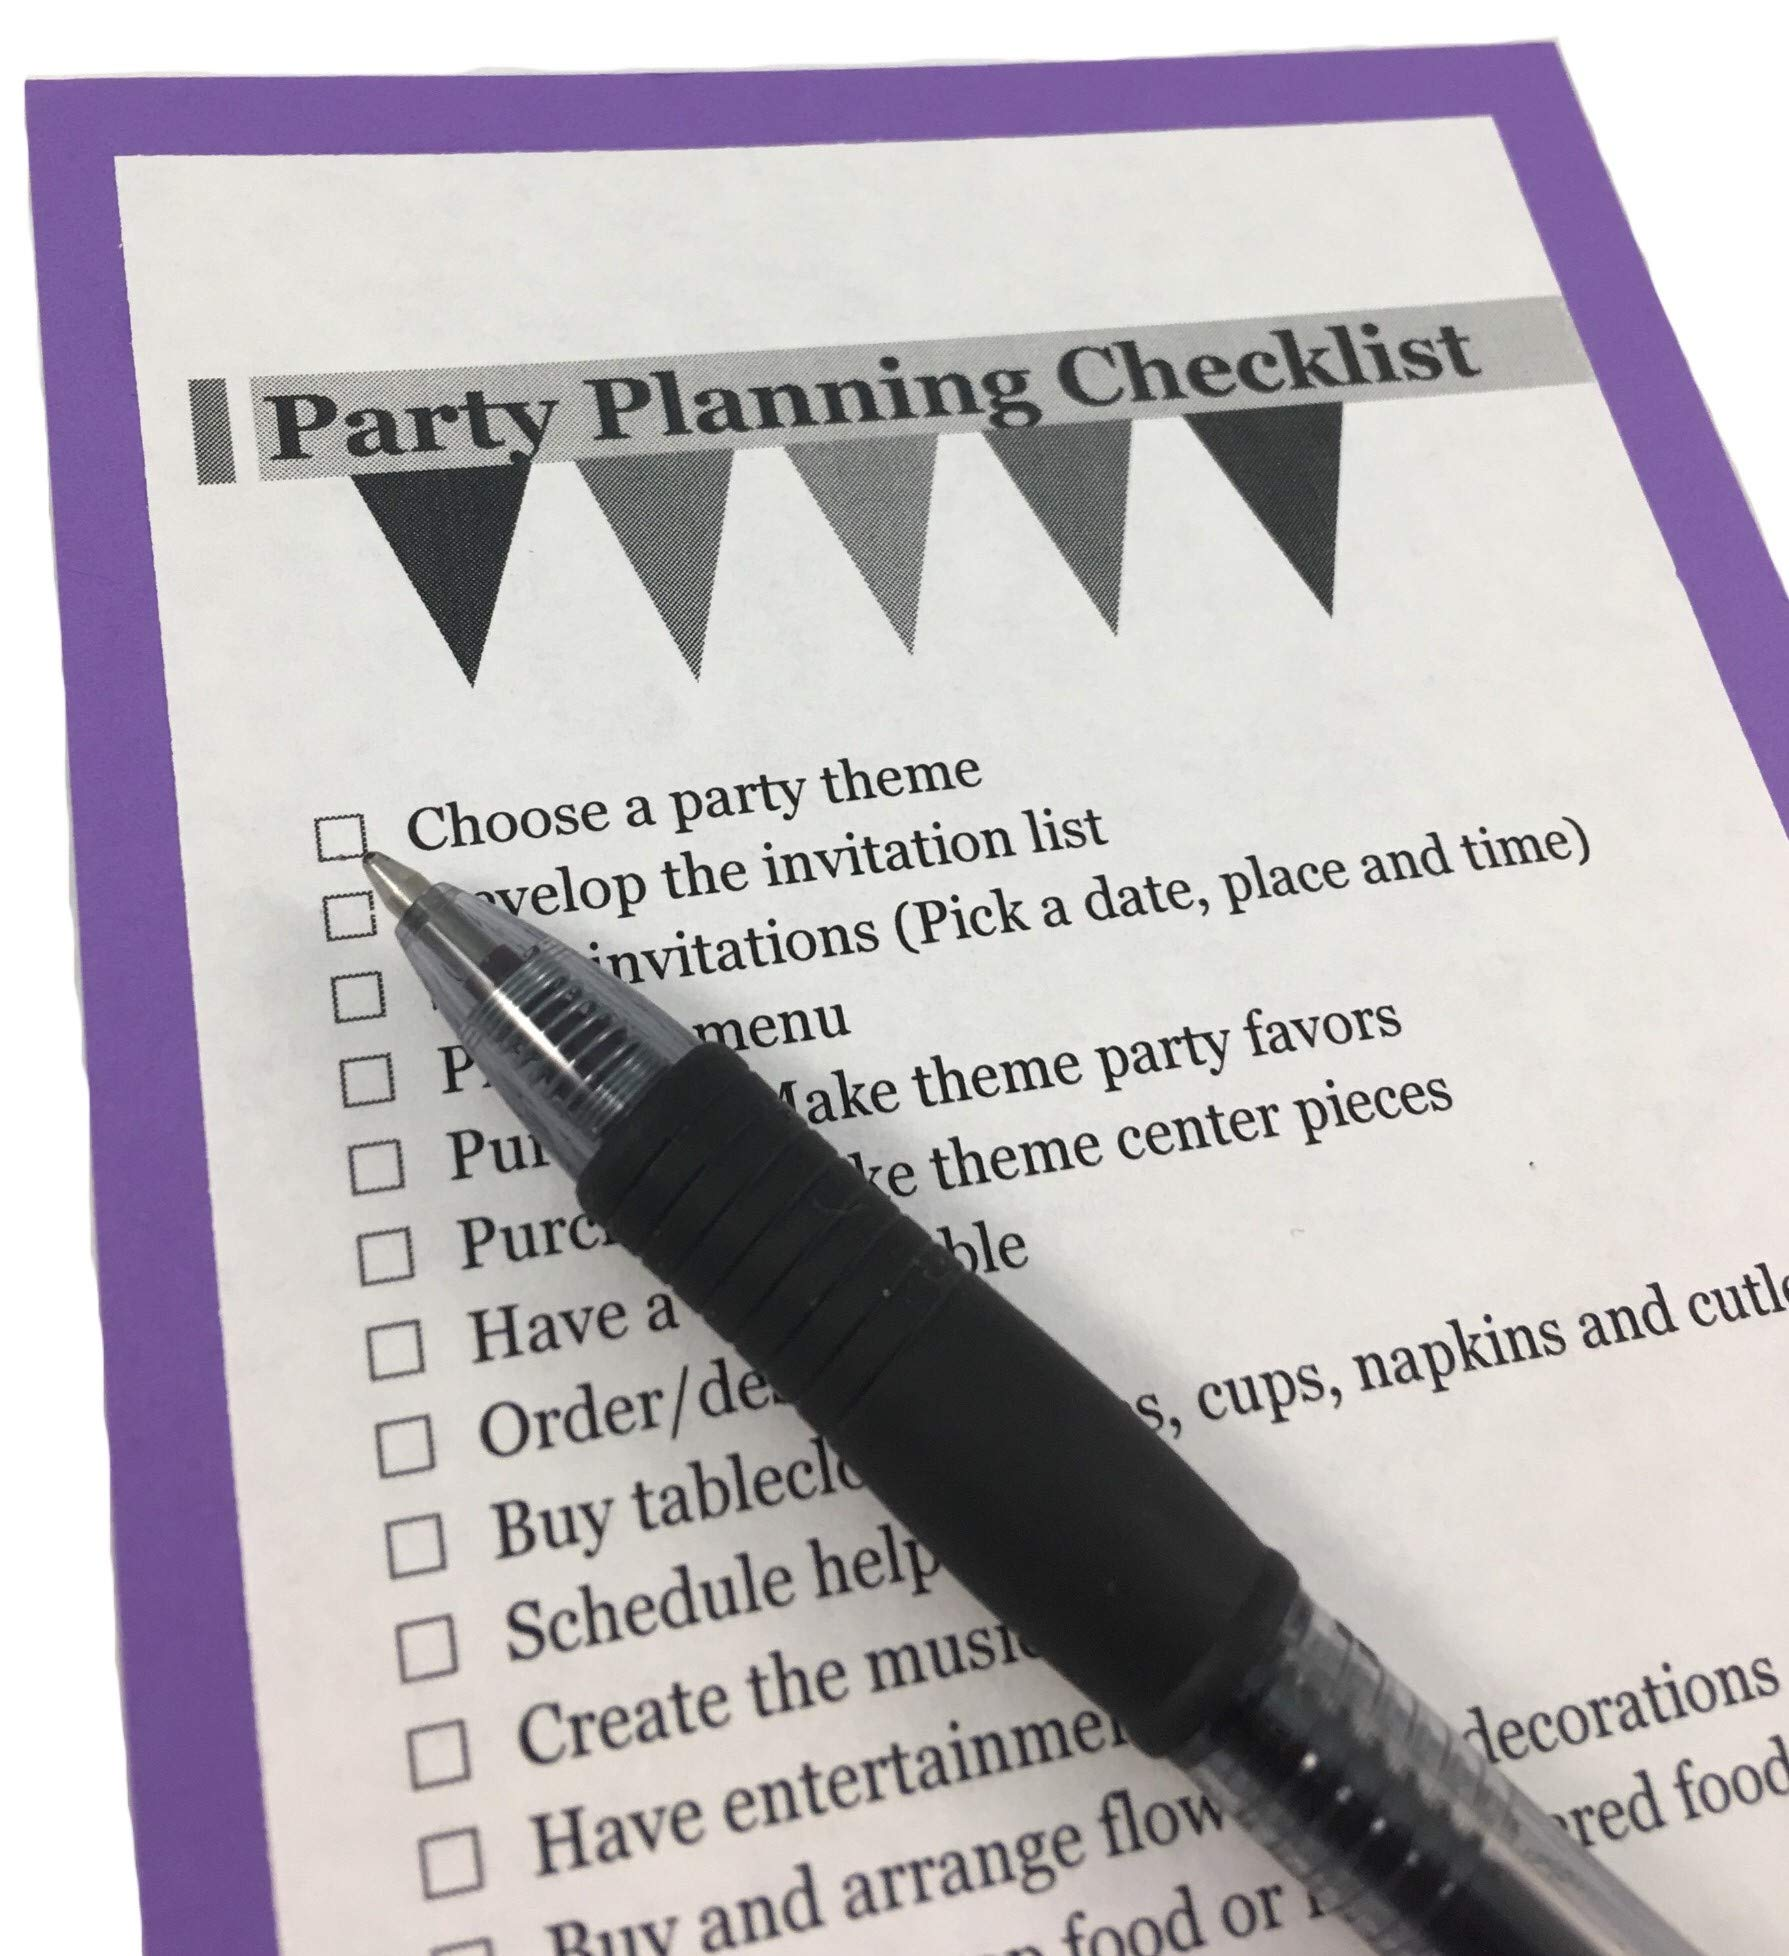 Purple Beverage Napkins (100-count) and Purple Dinner Napkins (100-count), and Comes with a Party Planning Checklist by Creative Converting Touch of Color